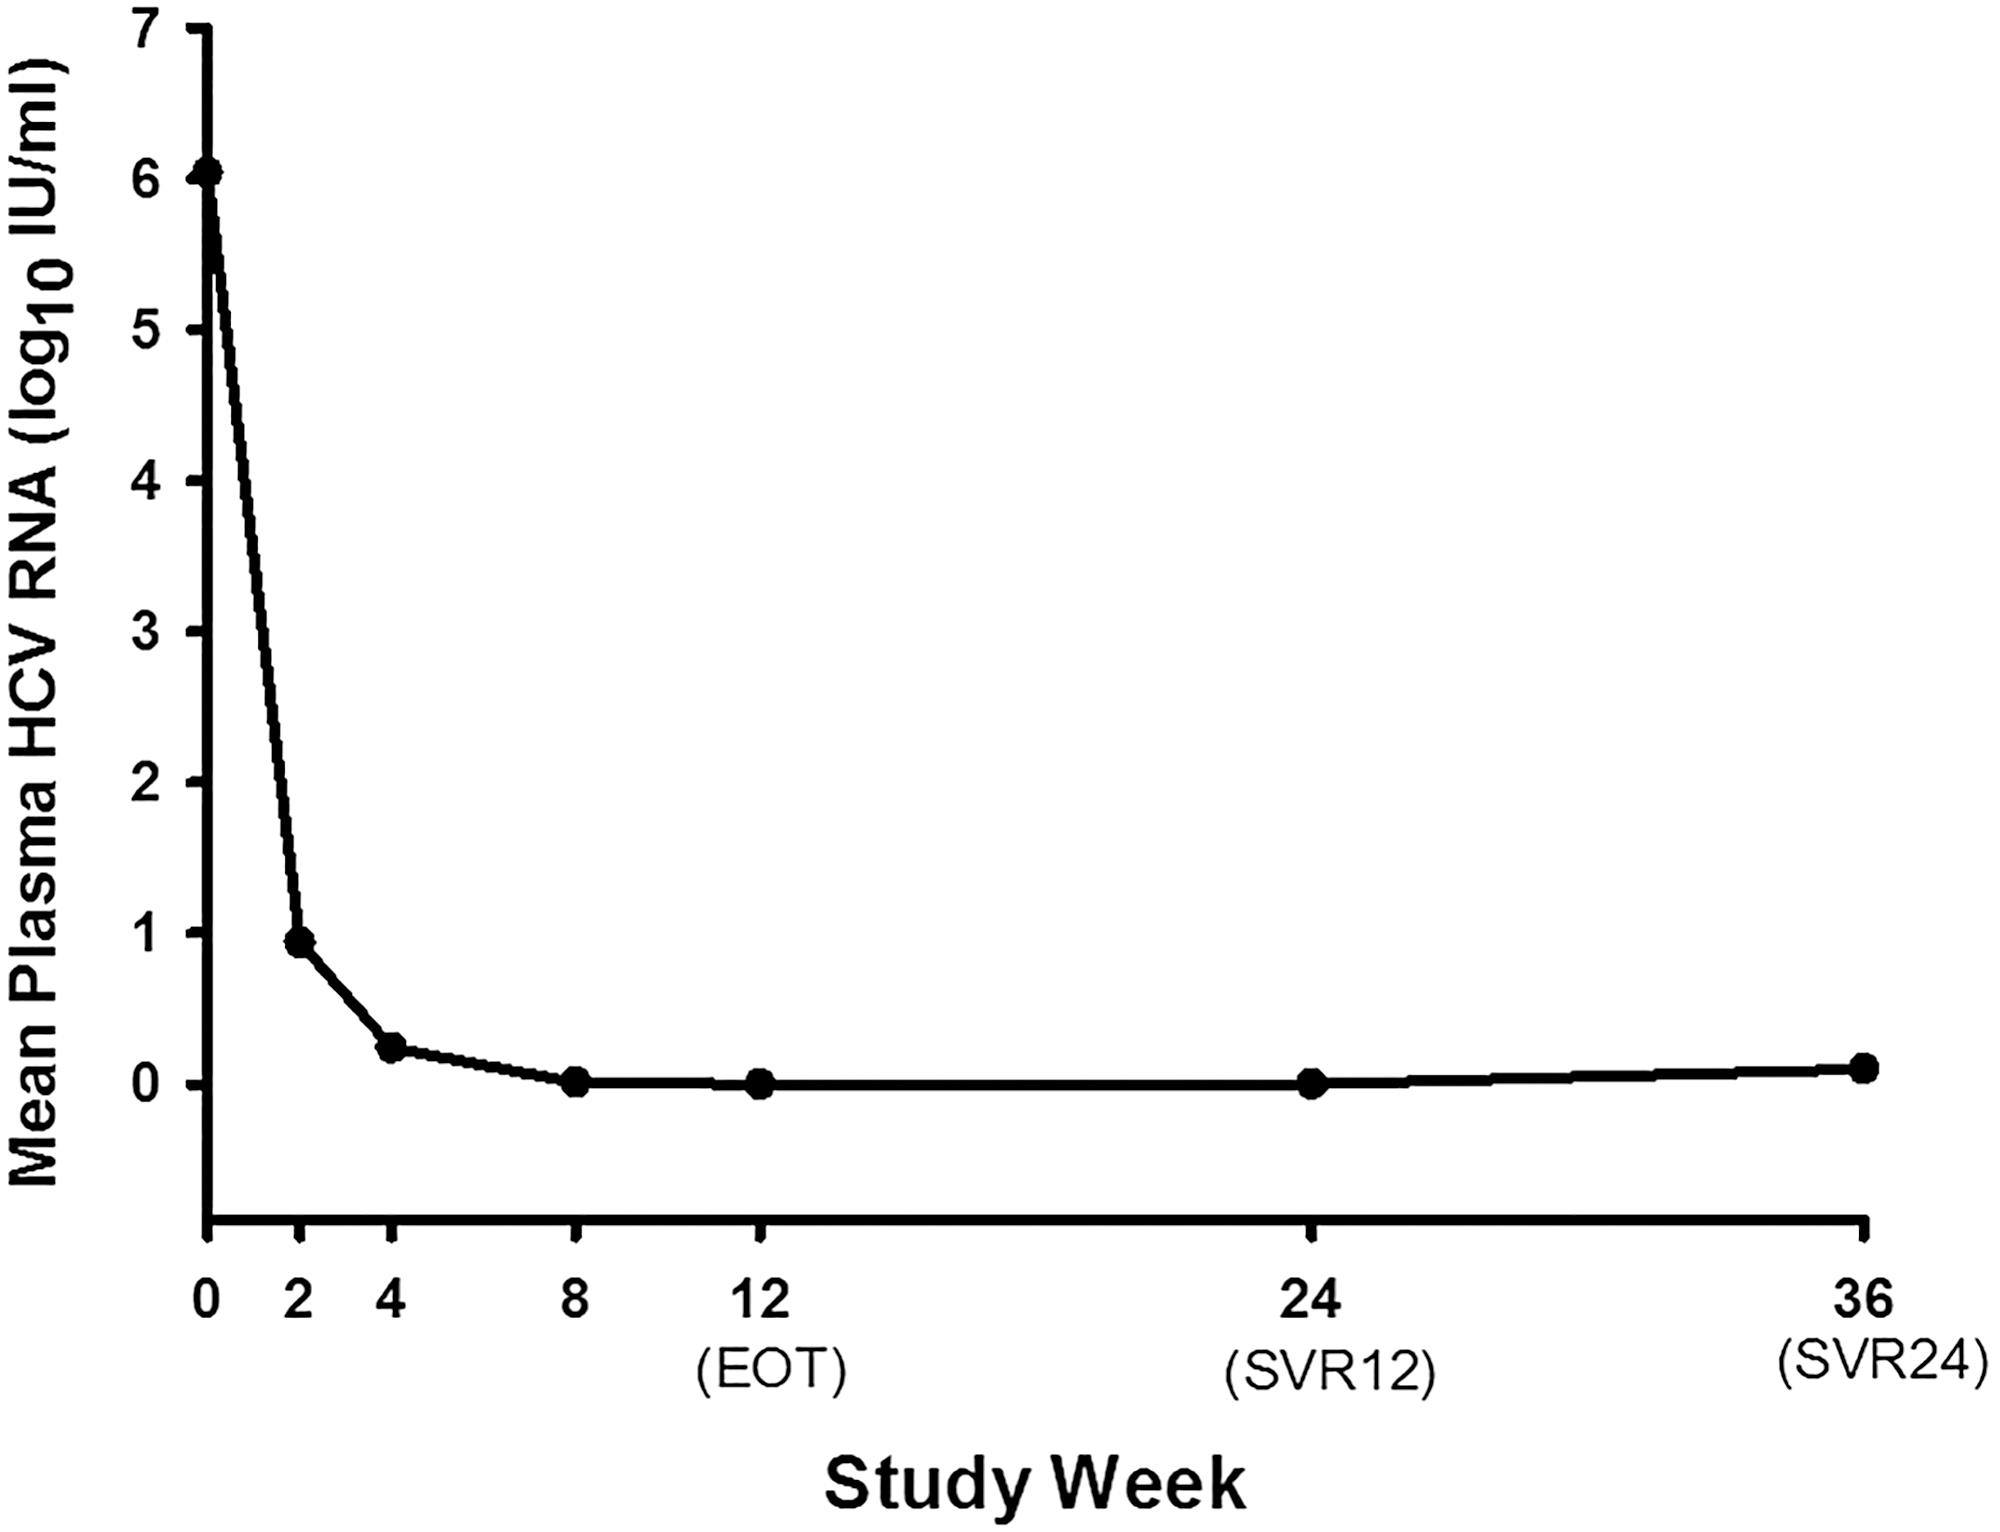 Mean plasma HCV RNA change during the treatment of all the patients who completed the treatment.